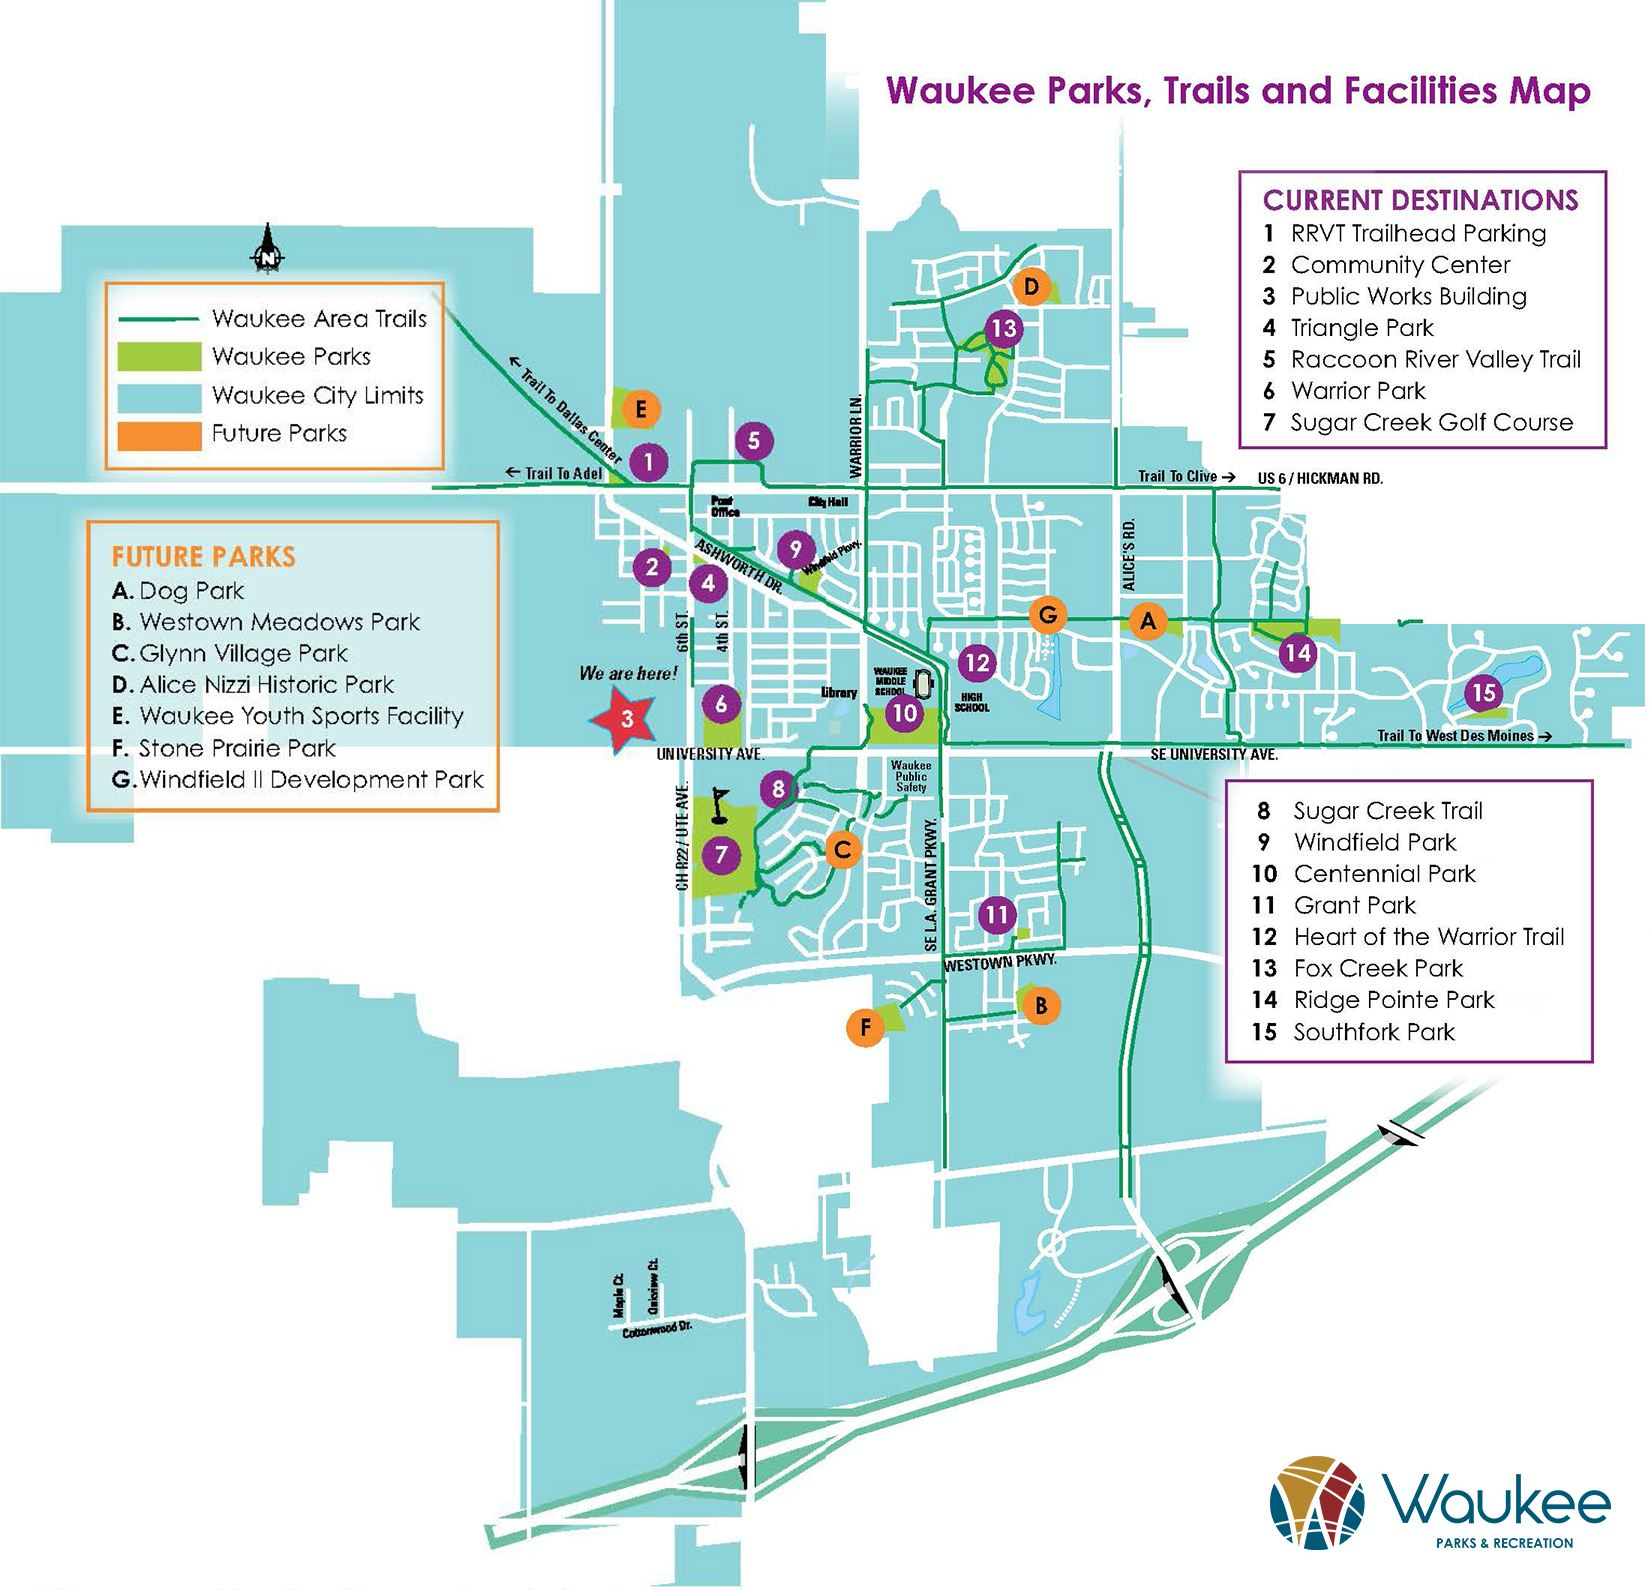 Waukee Trails, Parks & Facilities Map